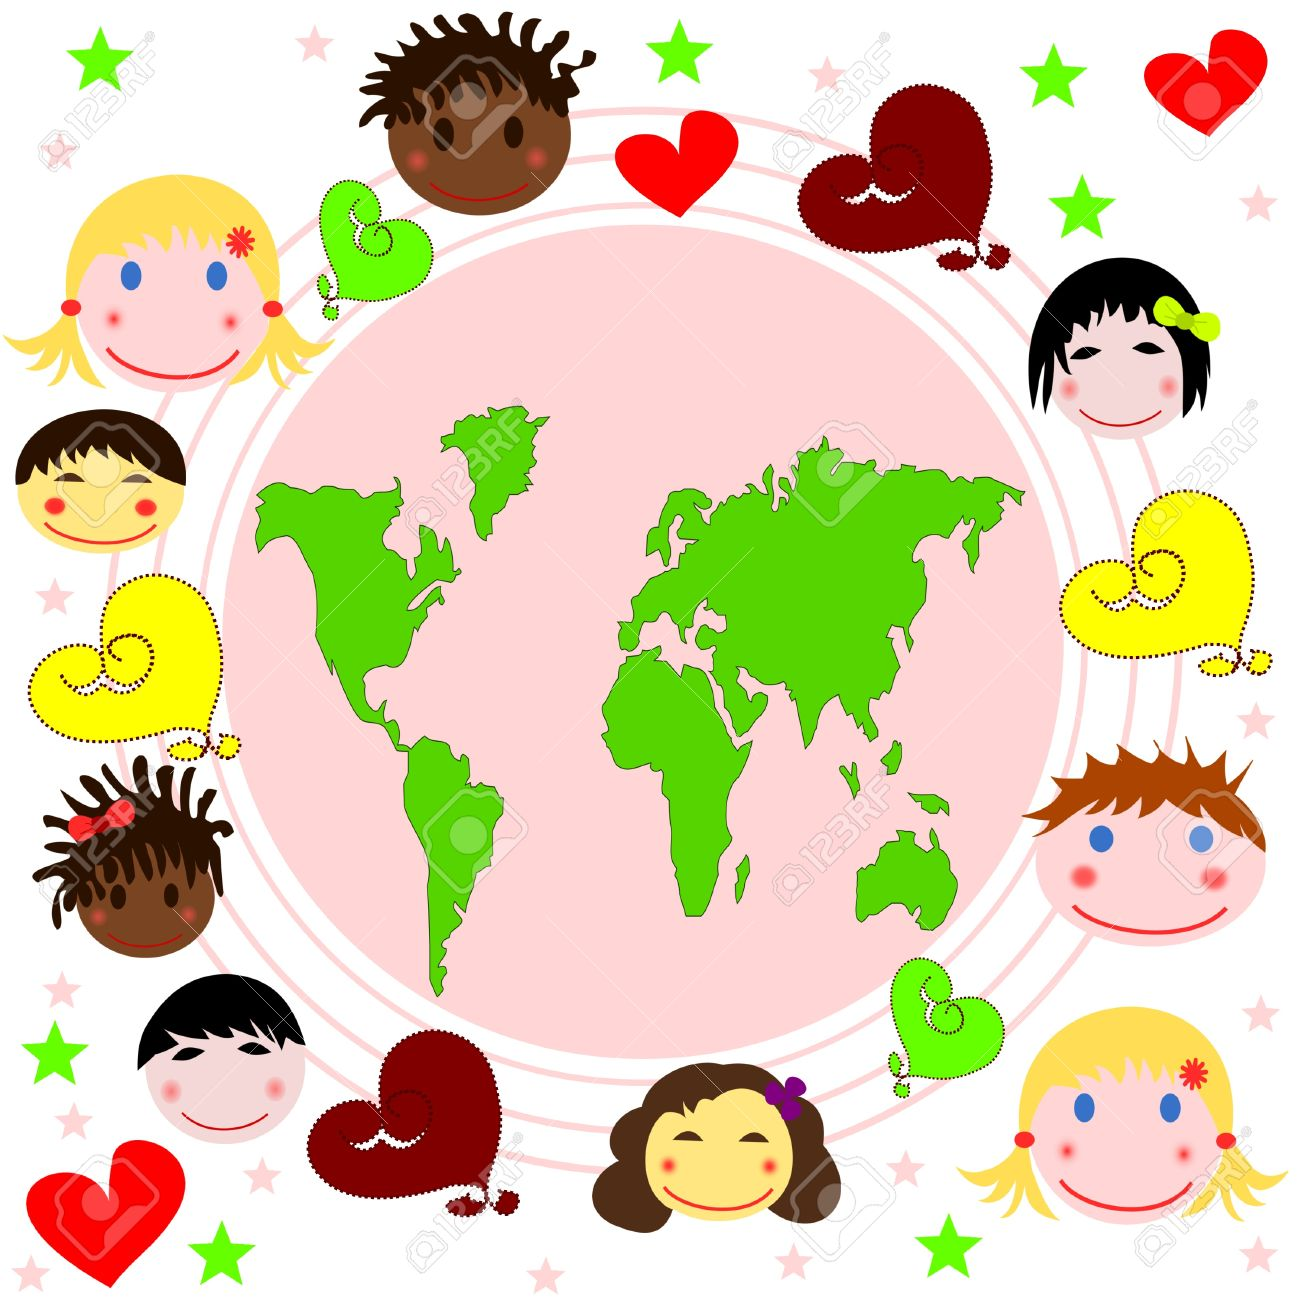 Races Of The World Map.Map Of The World Faces Of Children Of Different Races And Hearts